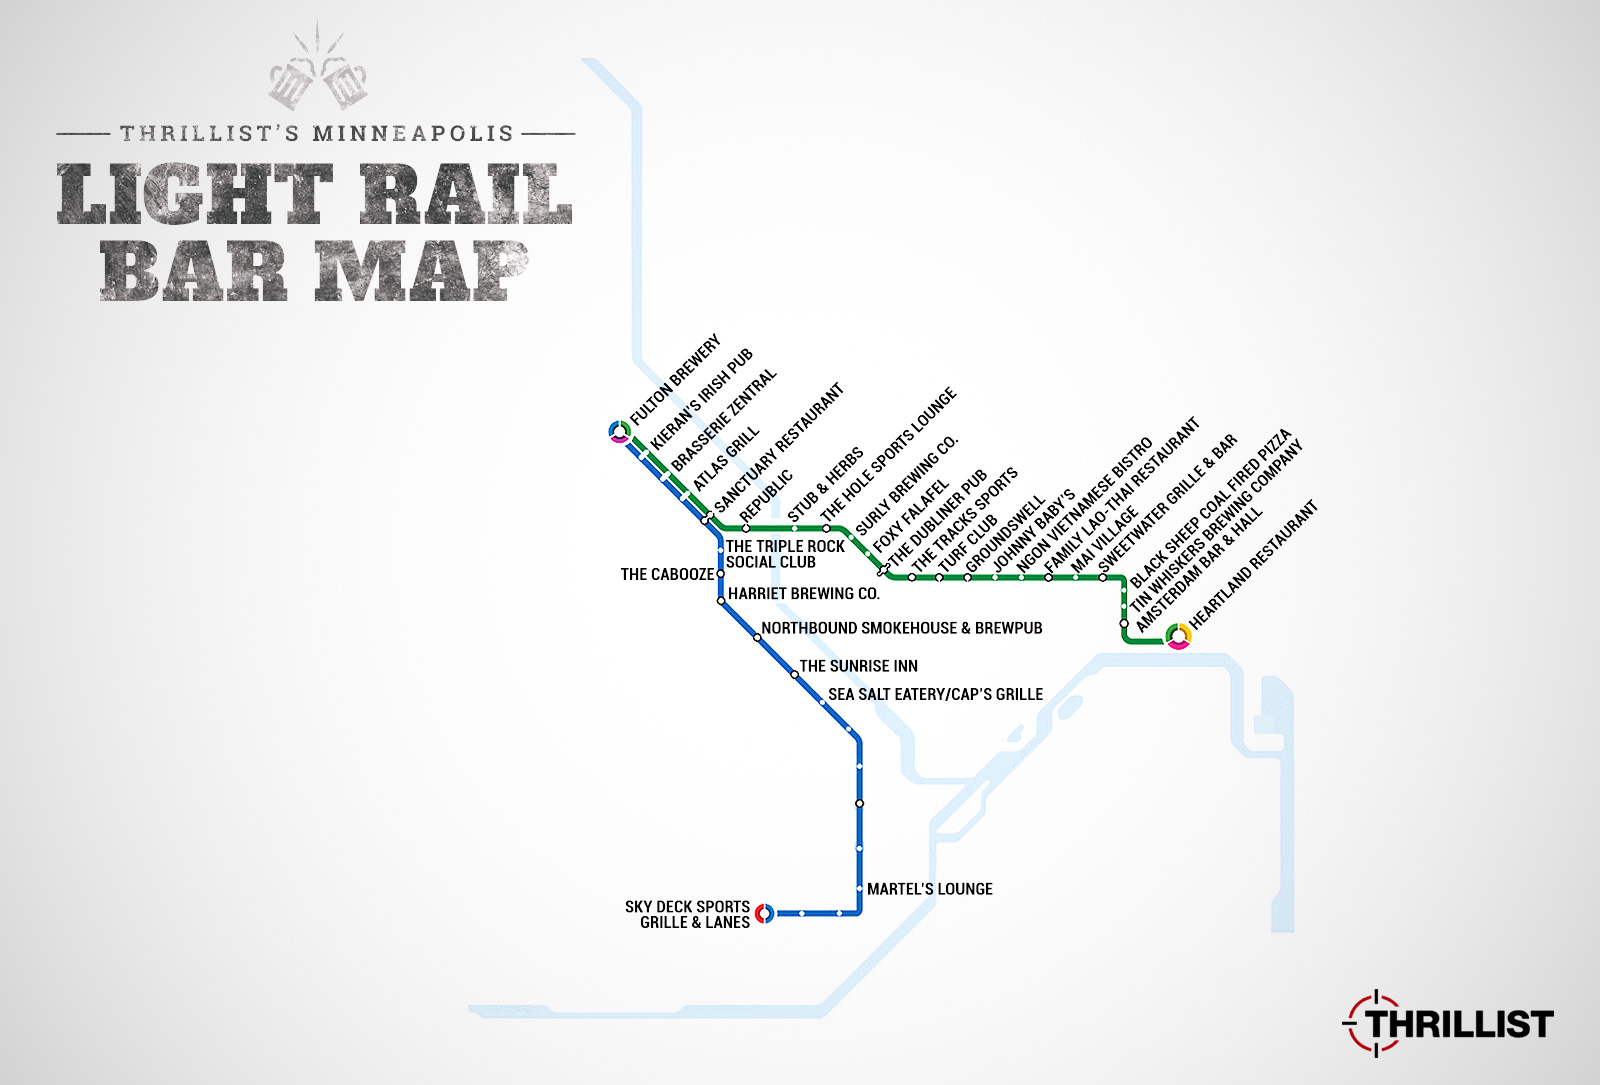 Light Rail Seattle Map Stops.Twin Cities Light Rail Map Map With Bars Near Every Stop Thrillist